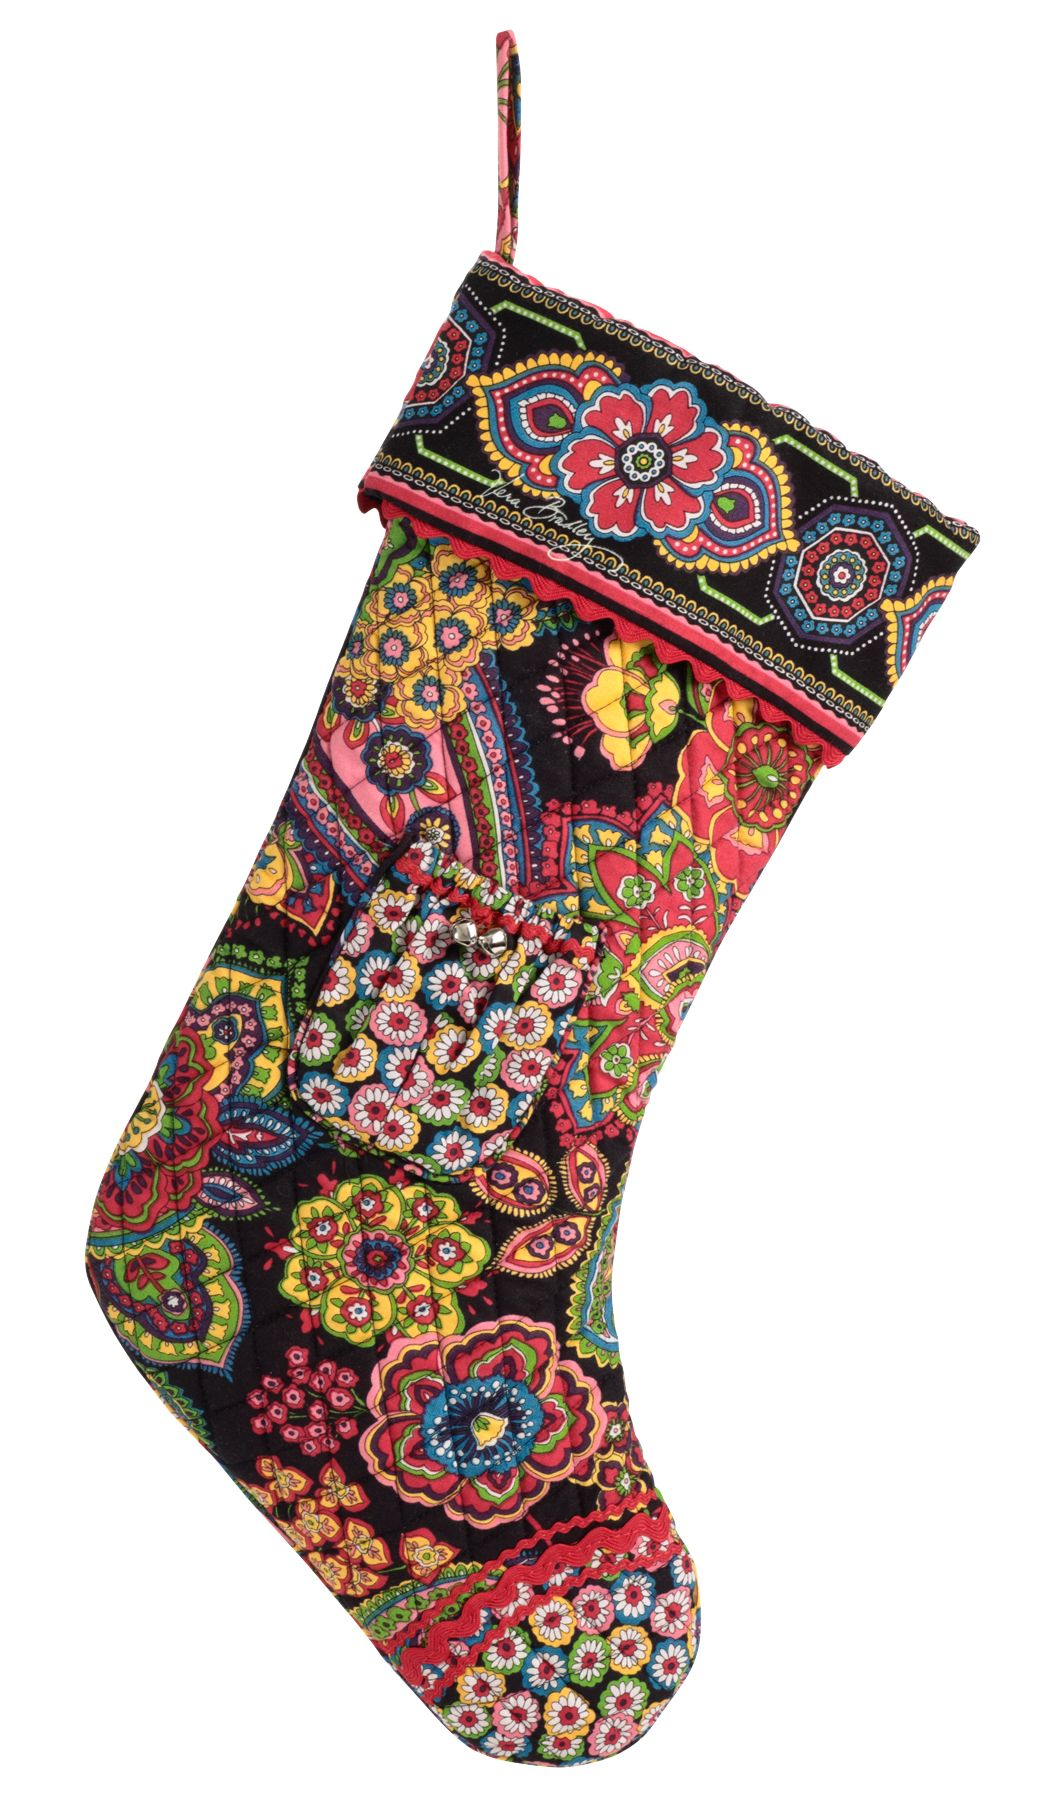 Vera Bradley Christmas Stocking in Symphony in Hue